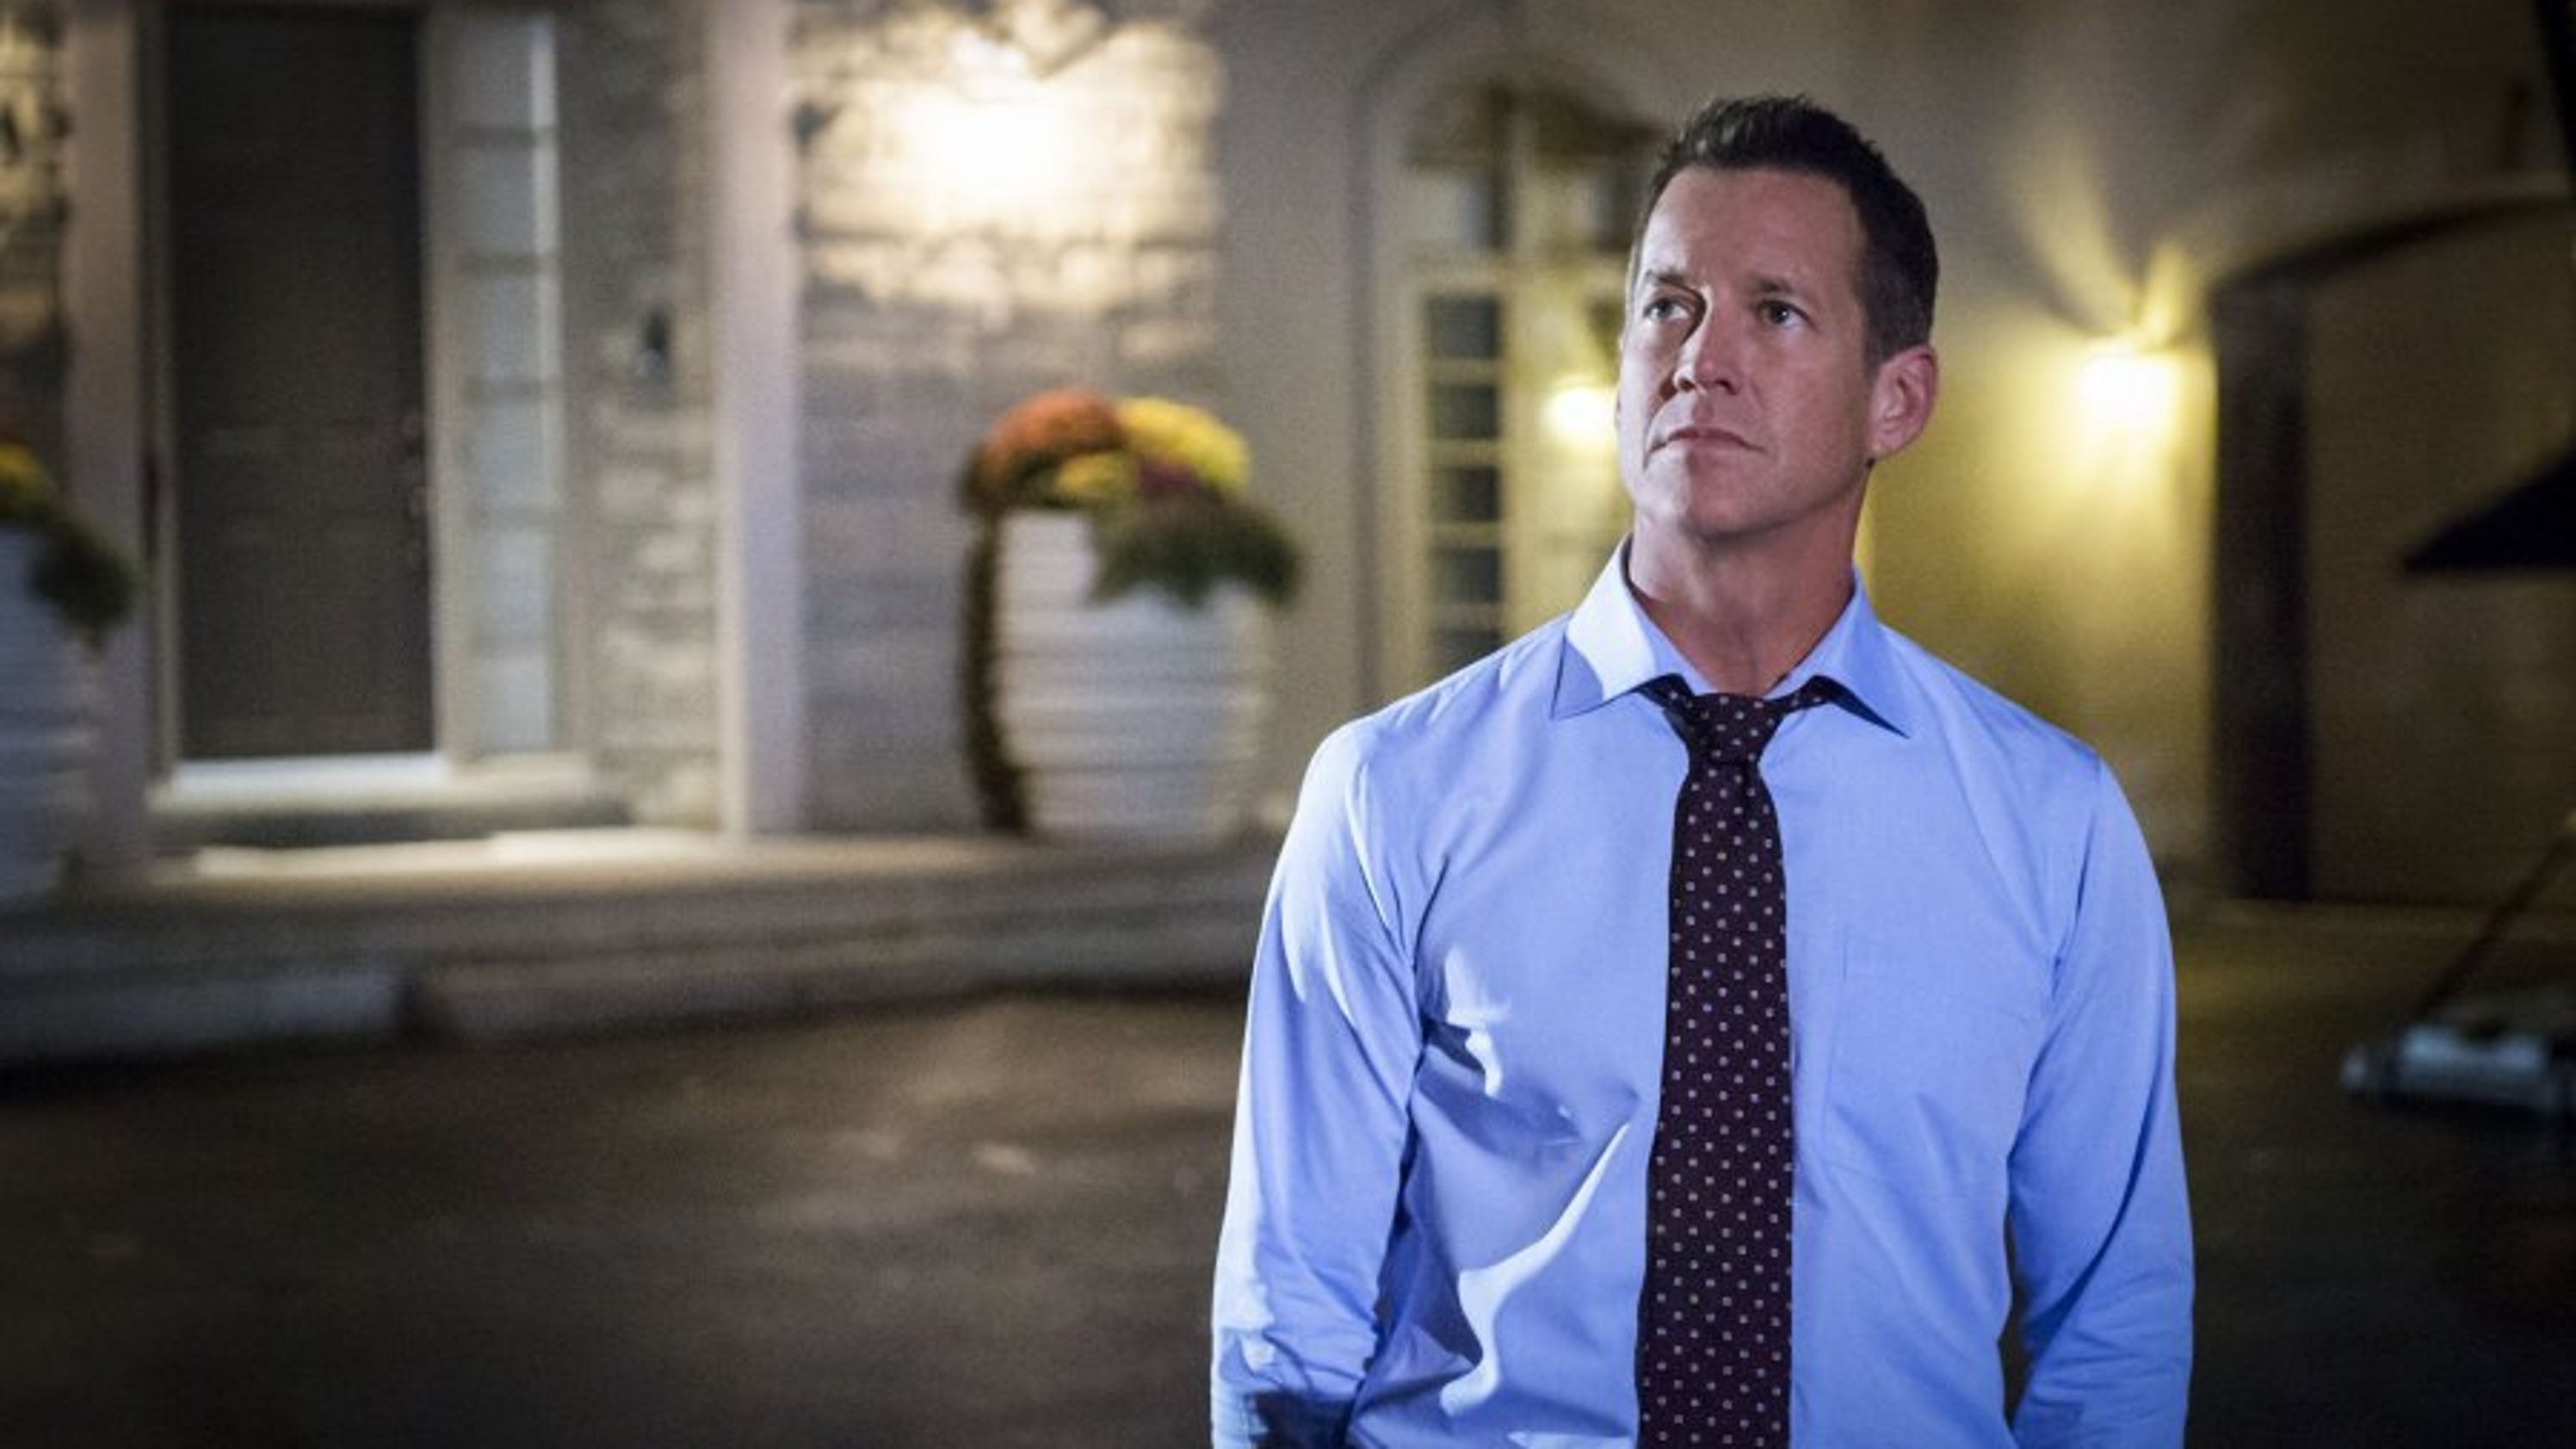 UT alum James Denton stays busy with roles on Good Witch Devious